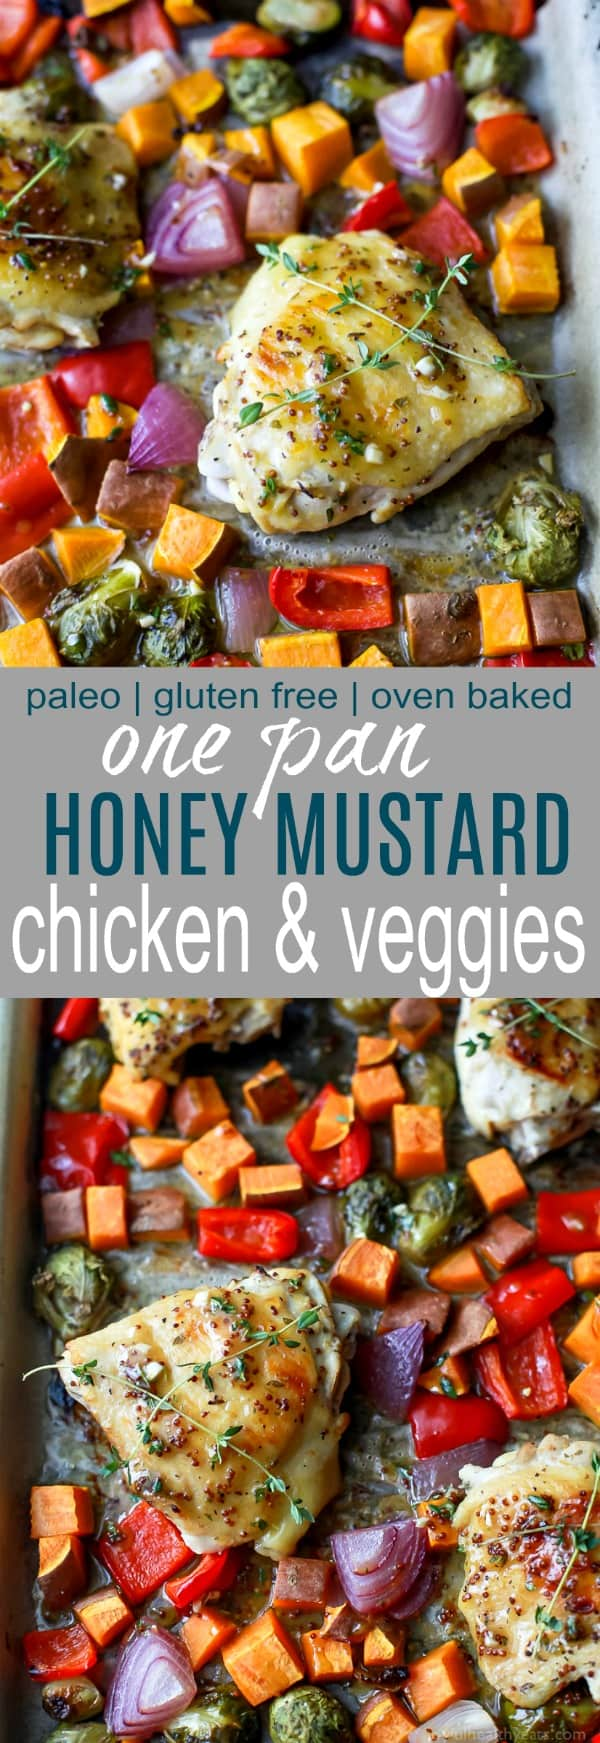 Oven Baked Honey Mustard Chicken Thighs with brussels sprouts and sweet potatoes. This Baked Chicken Thigh recipe is an easy one pan meal perfect for a quick healthy weeknight dinner. #paleo #glutenfree